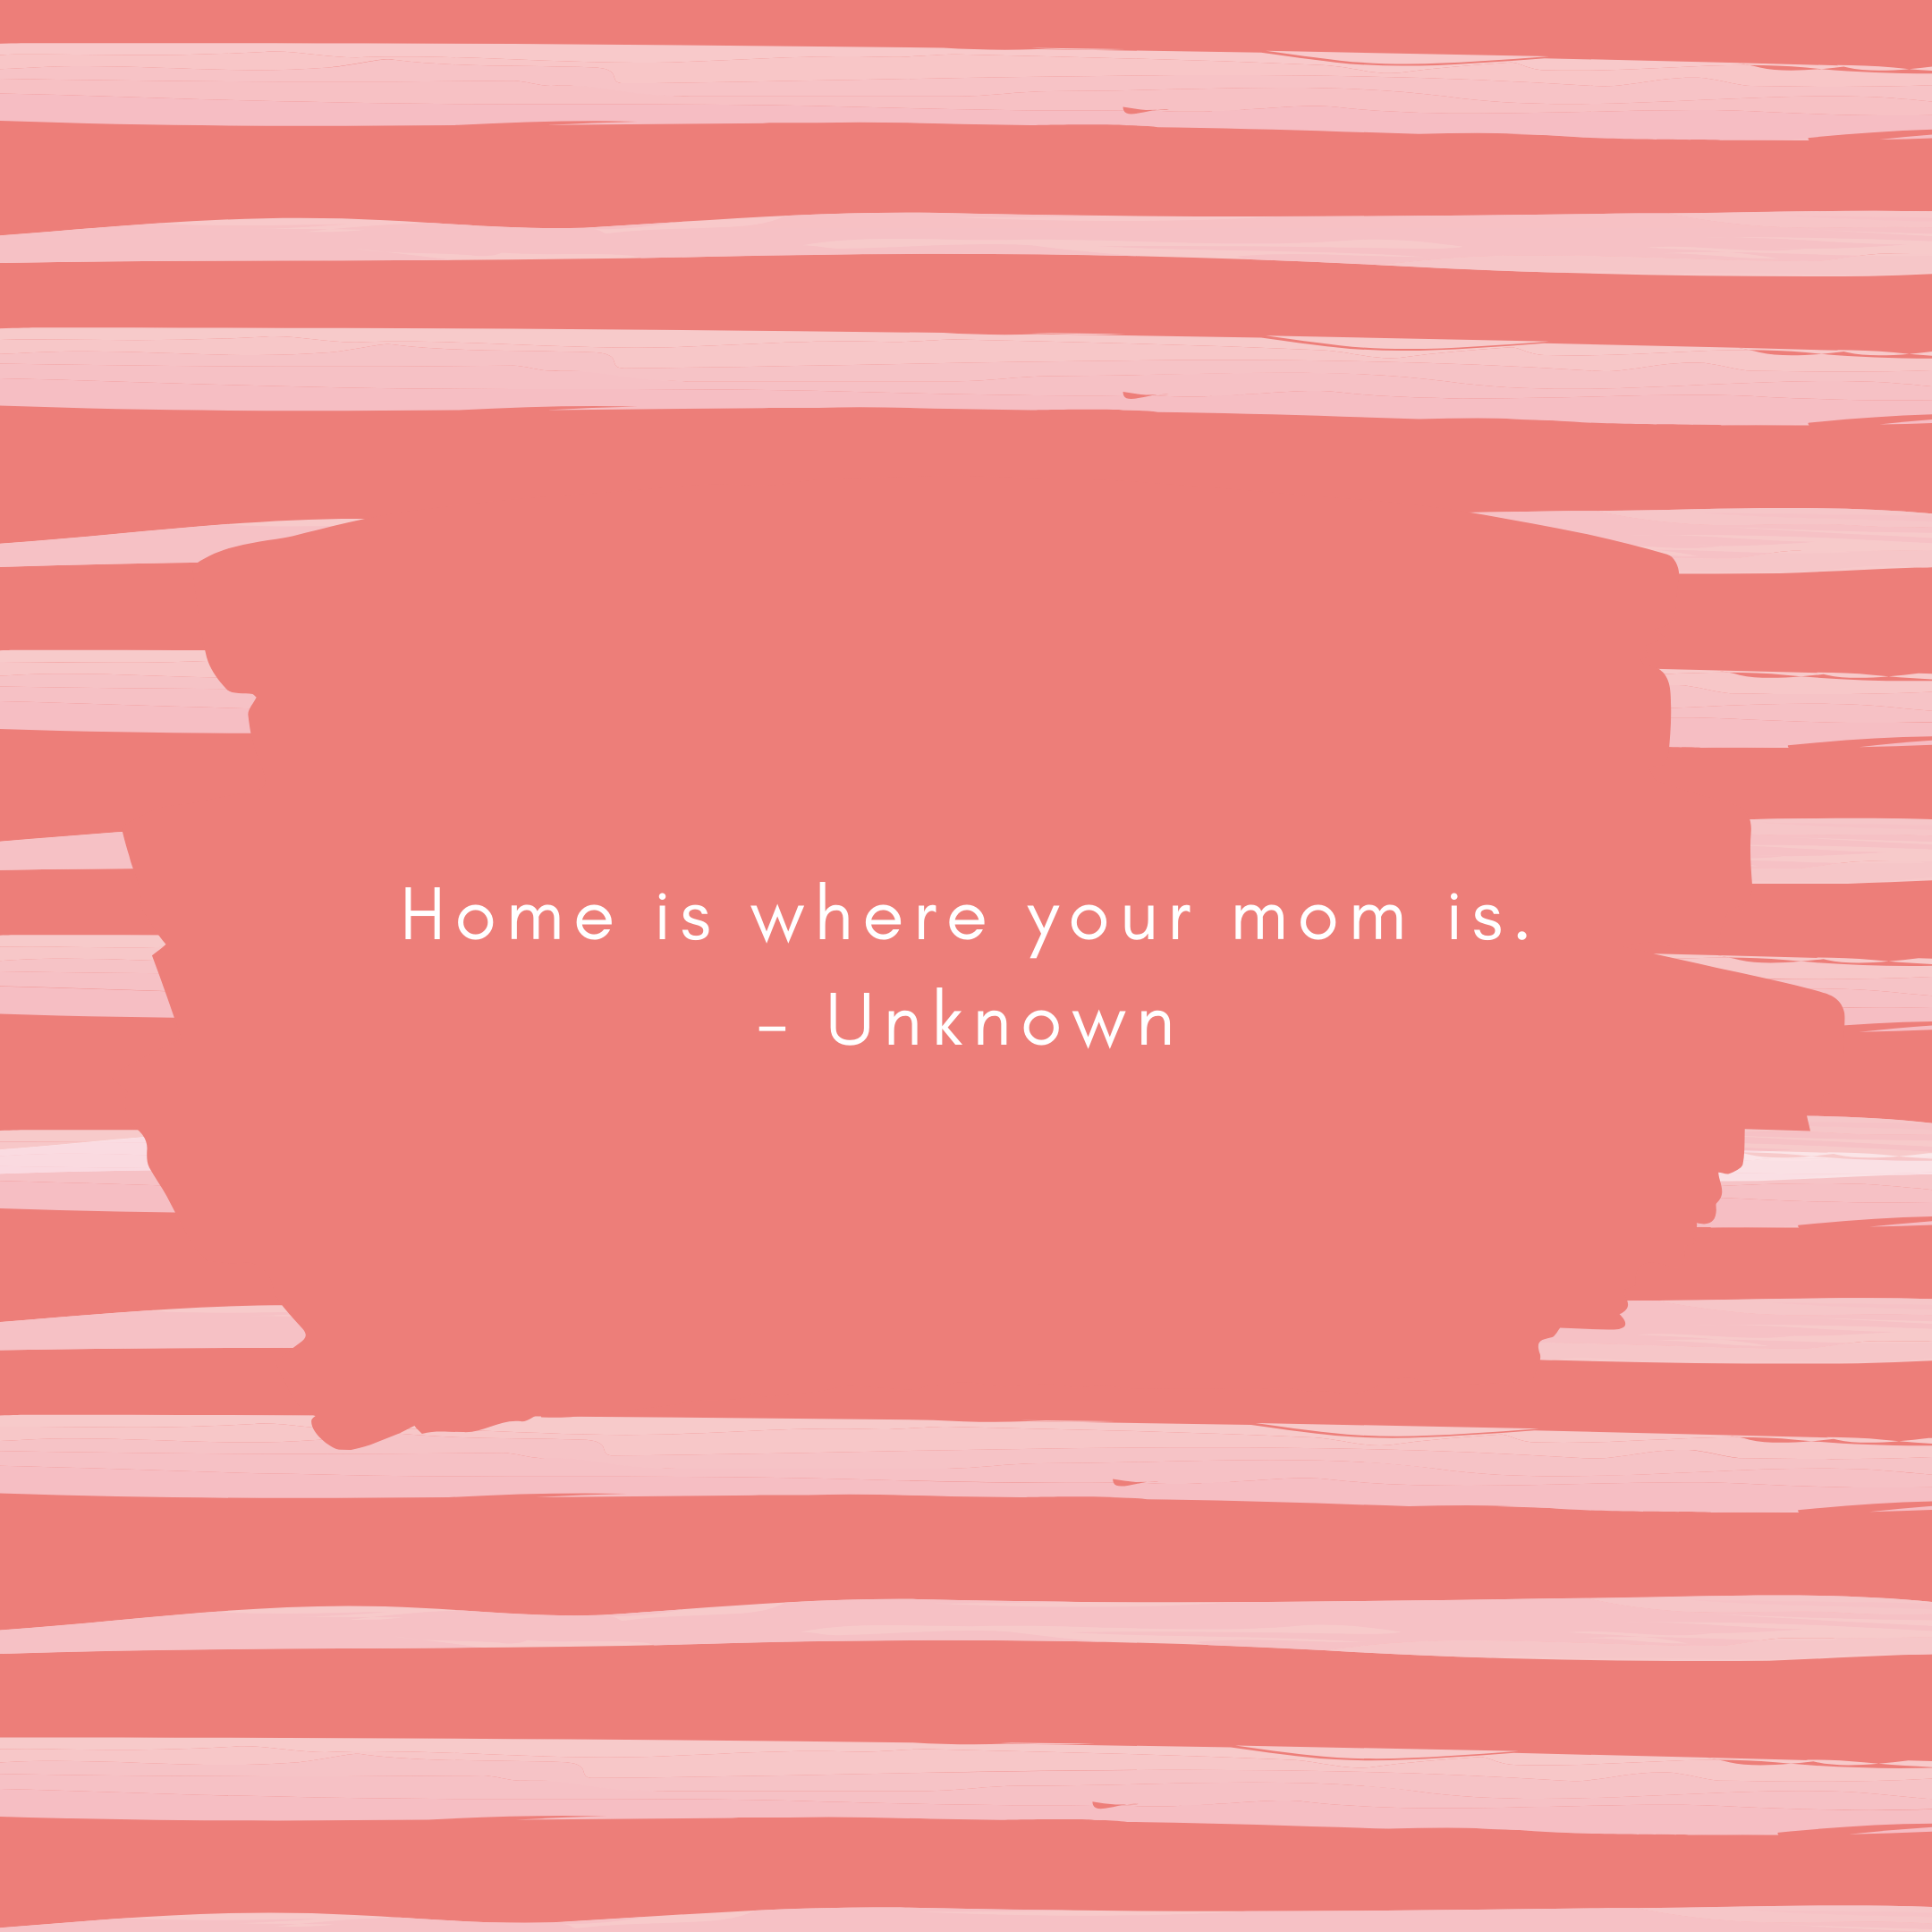 Home is where your mom is. – Unknown